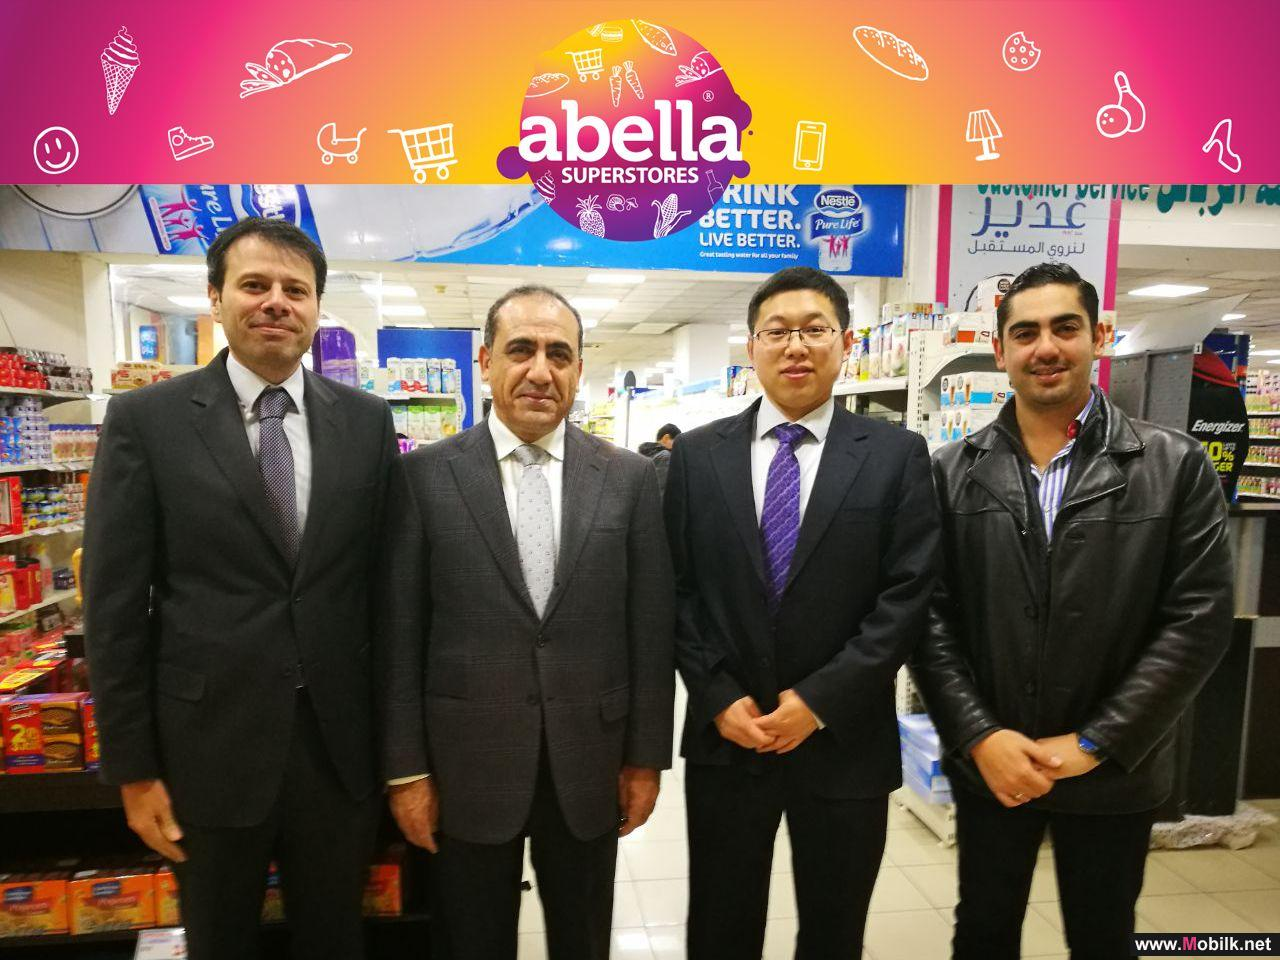 Abella Superstores Teams Up with SolFirst  by Using Huawei Smart PV Solution